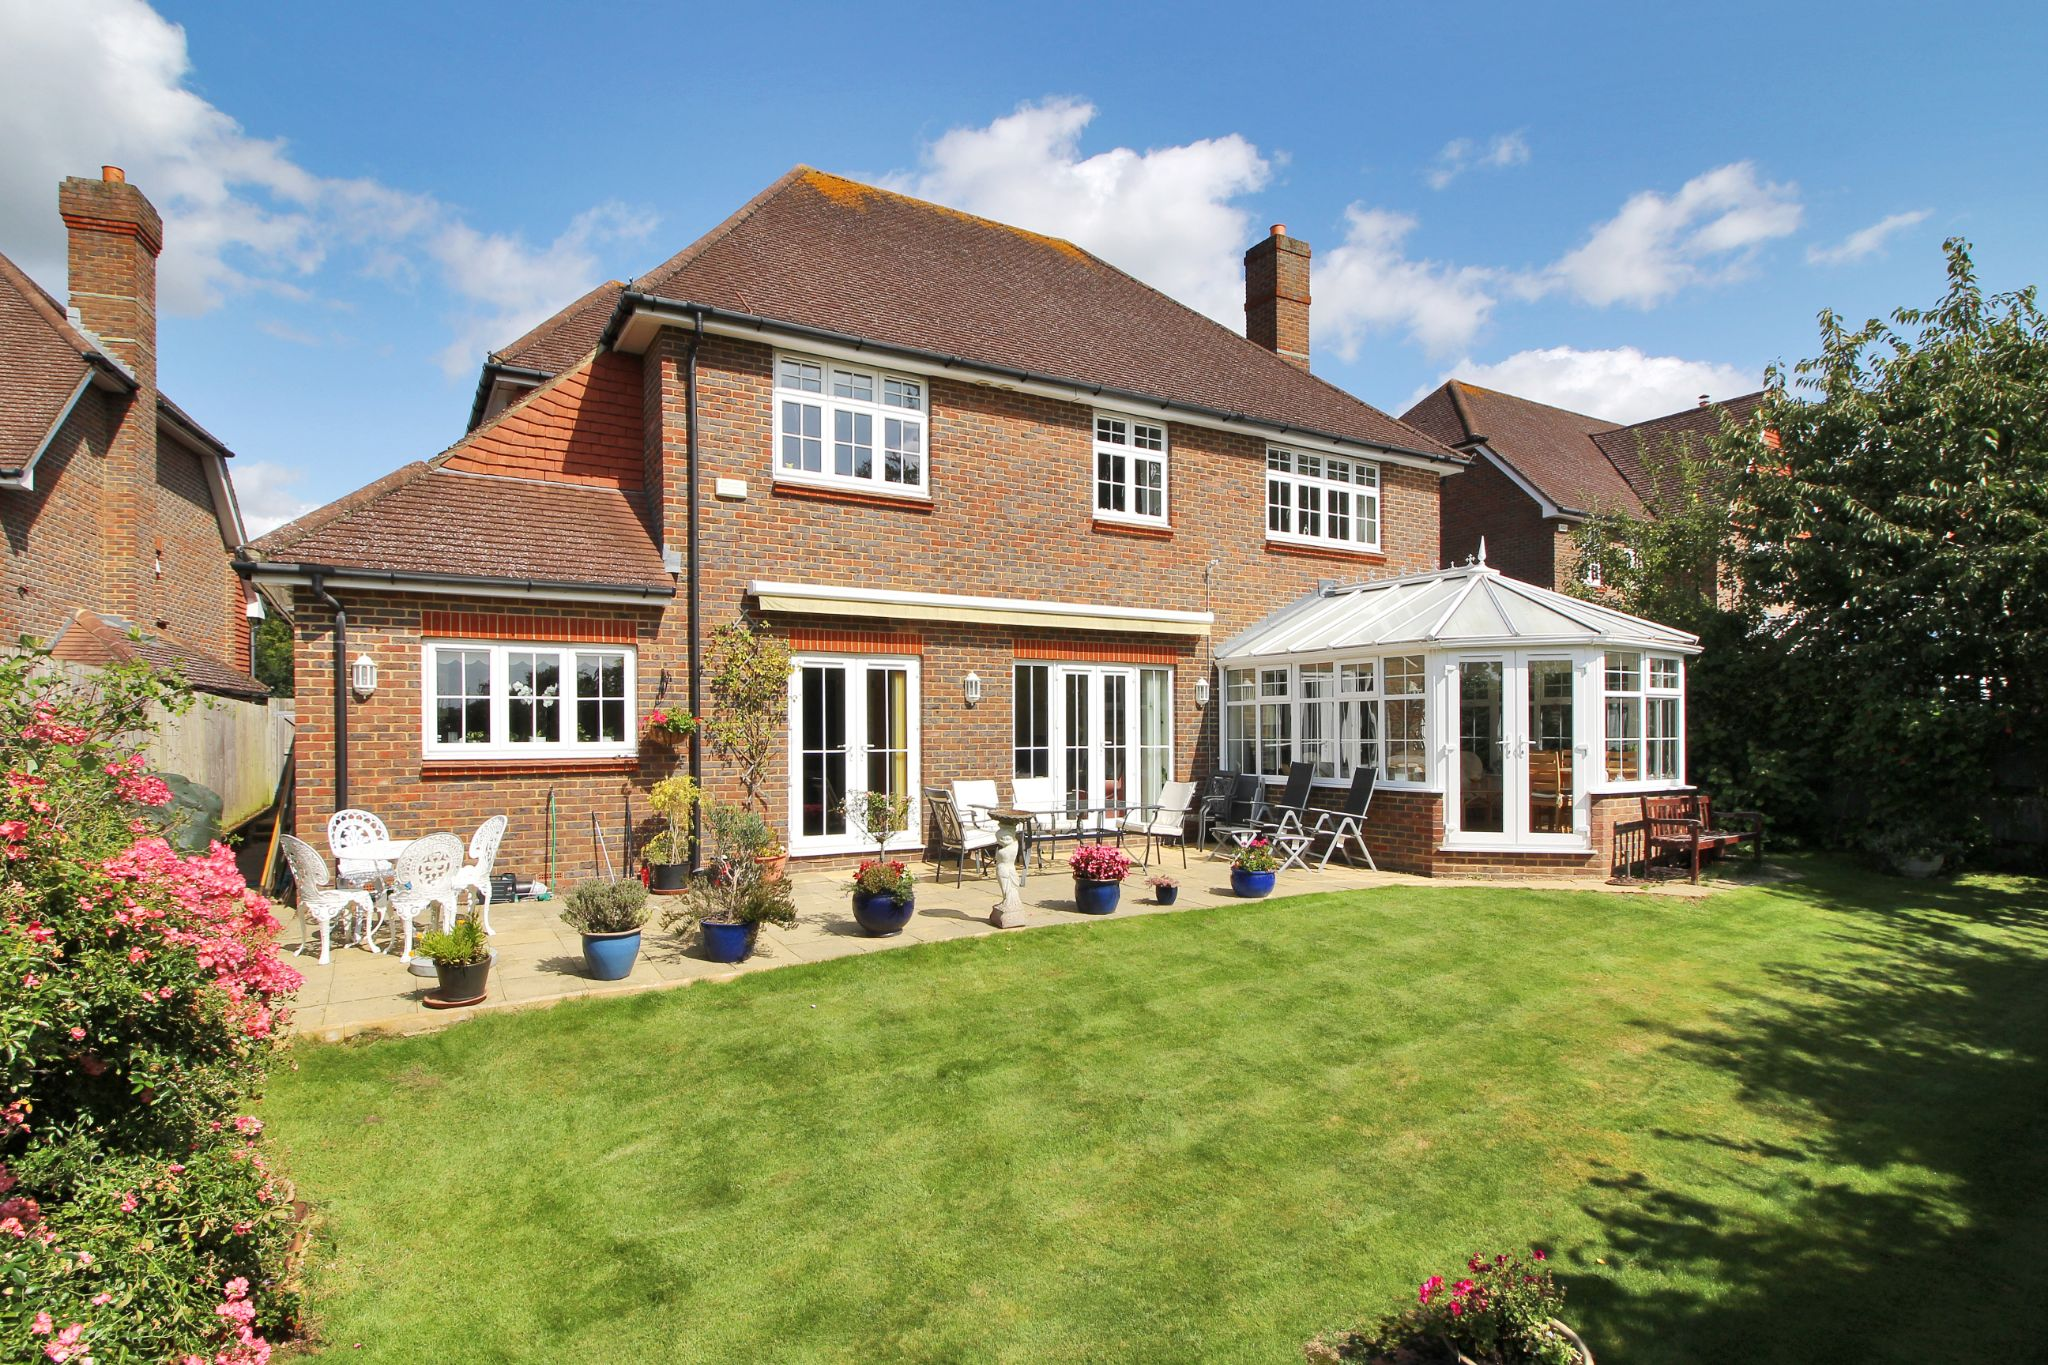 5 bedroom detached house For Sale in Sevenoaks - Photograph 11